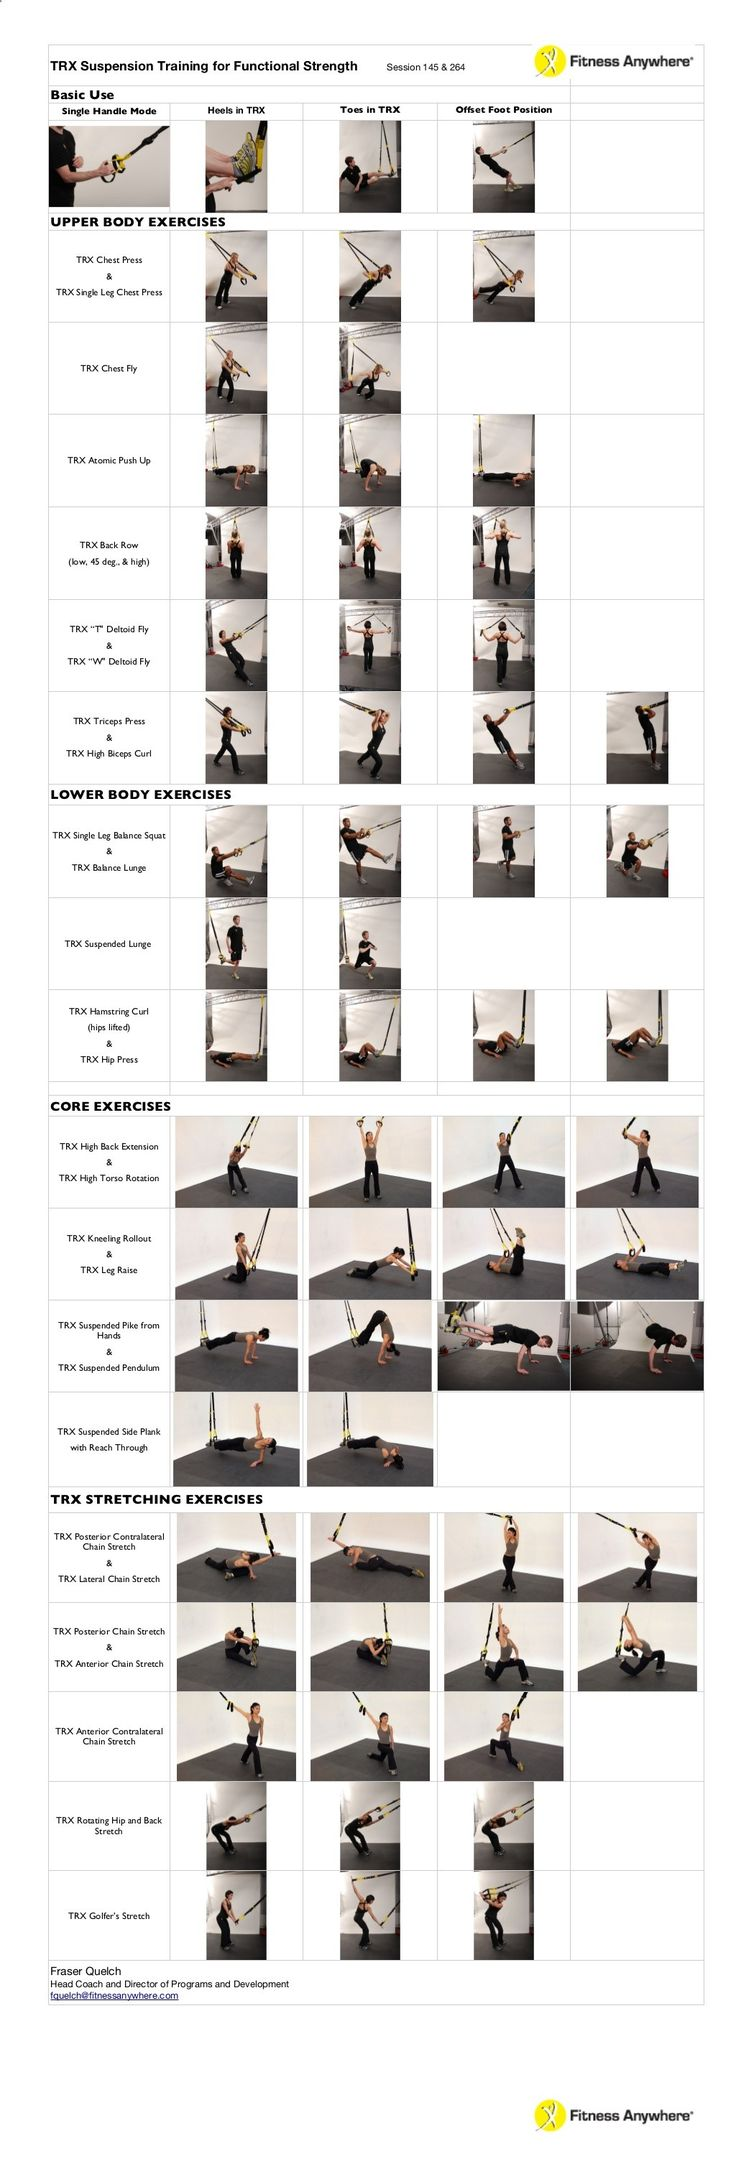 Yoga-Get Your Sexiest Body Ever Without - TRX Suspension Training for Functional Strength Session 145  264 Basic Use Single Handle Mode Heels in TRX UPPER BODY... - Get your sexiest body ever without,crunches,cardio,or ever setting foot in a gym